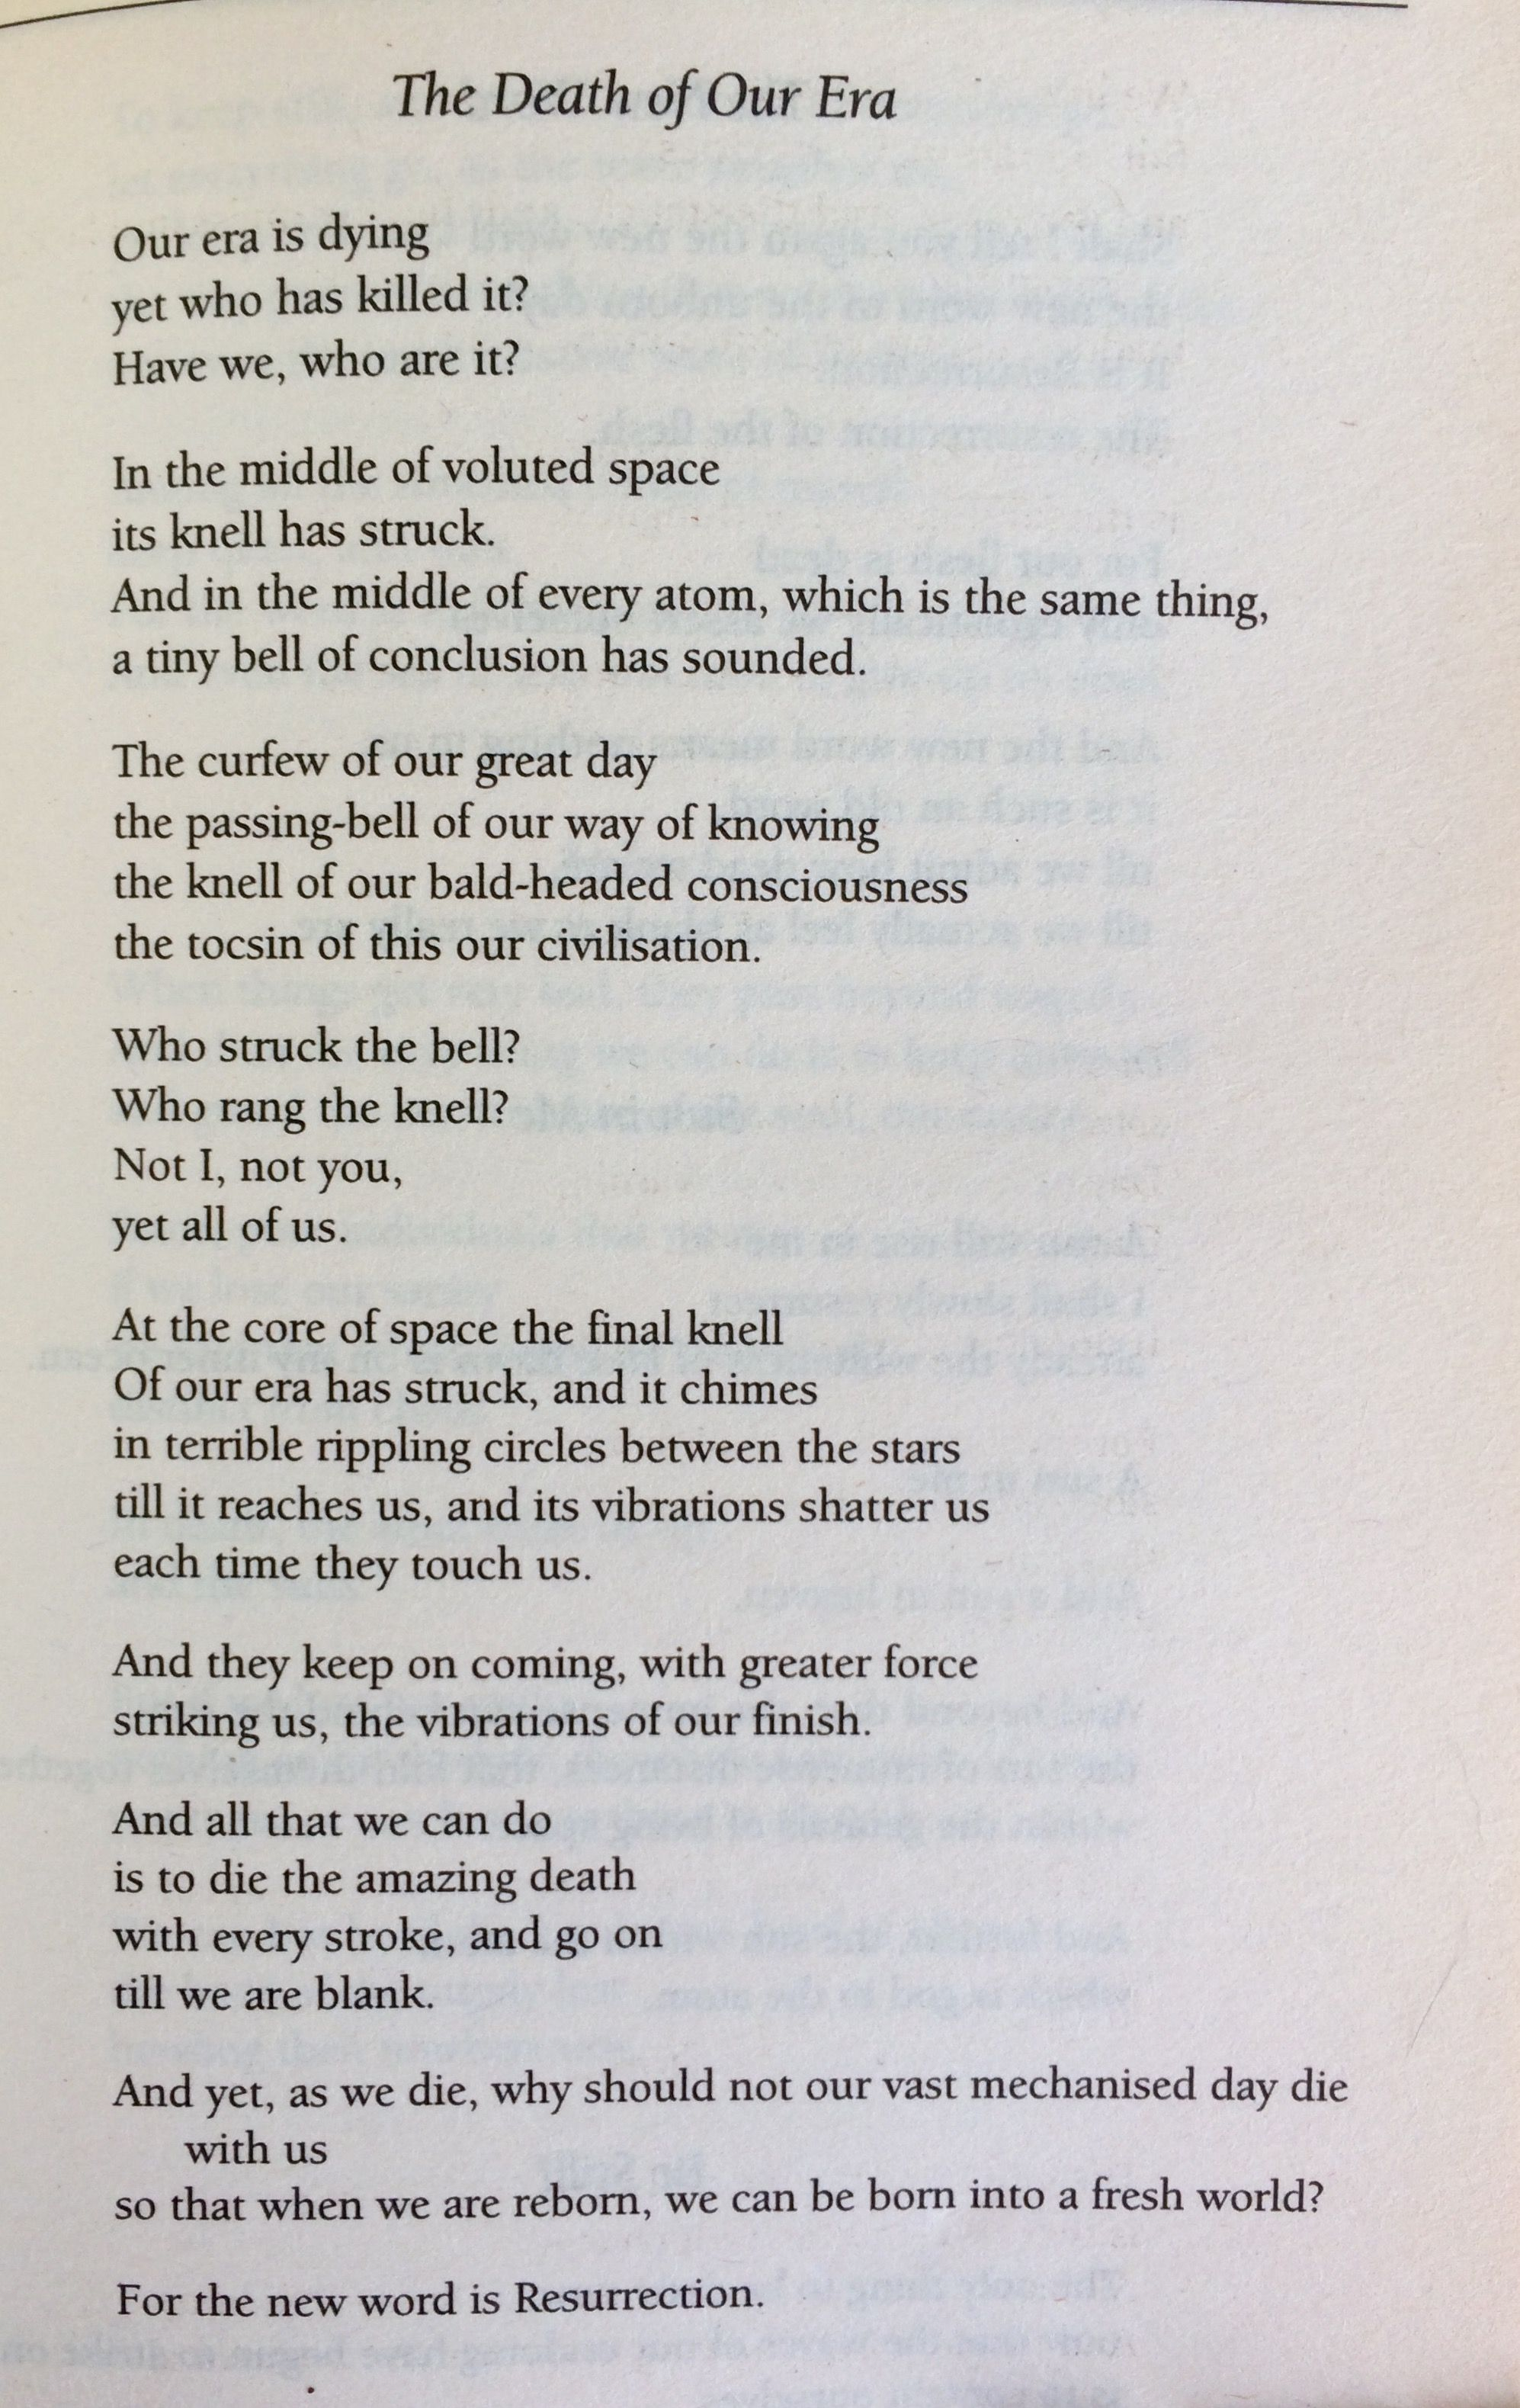 To the death of the poet